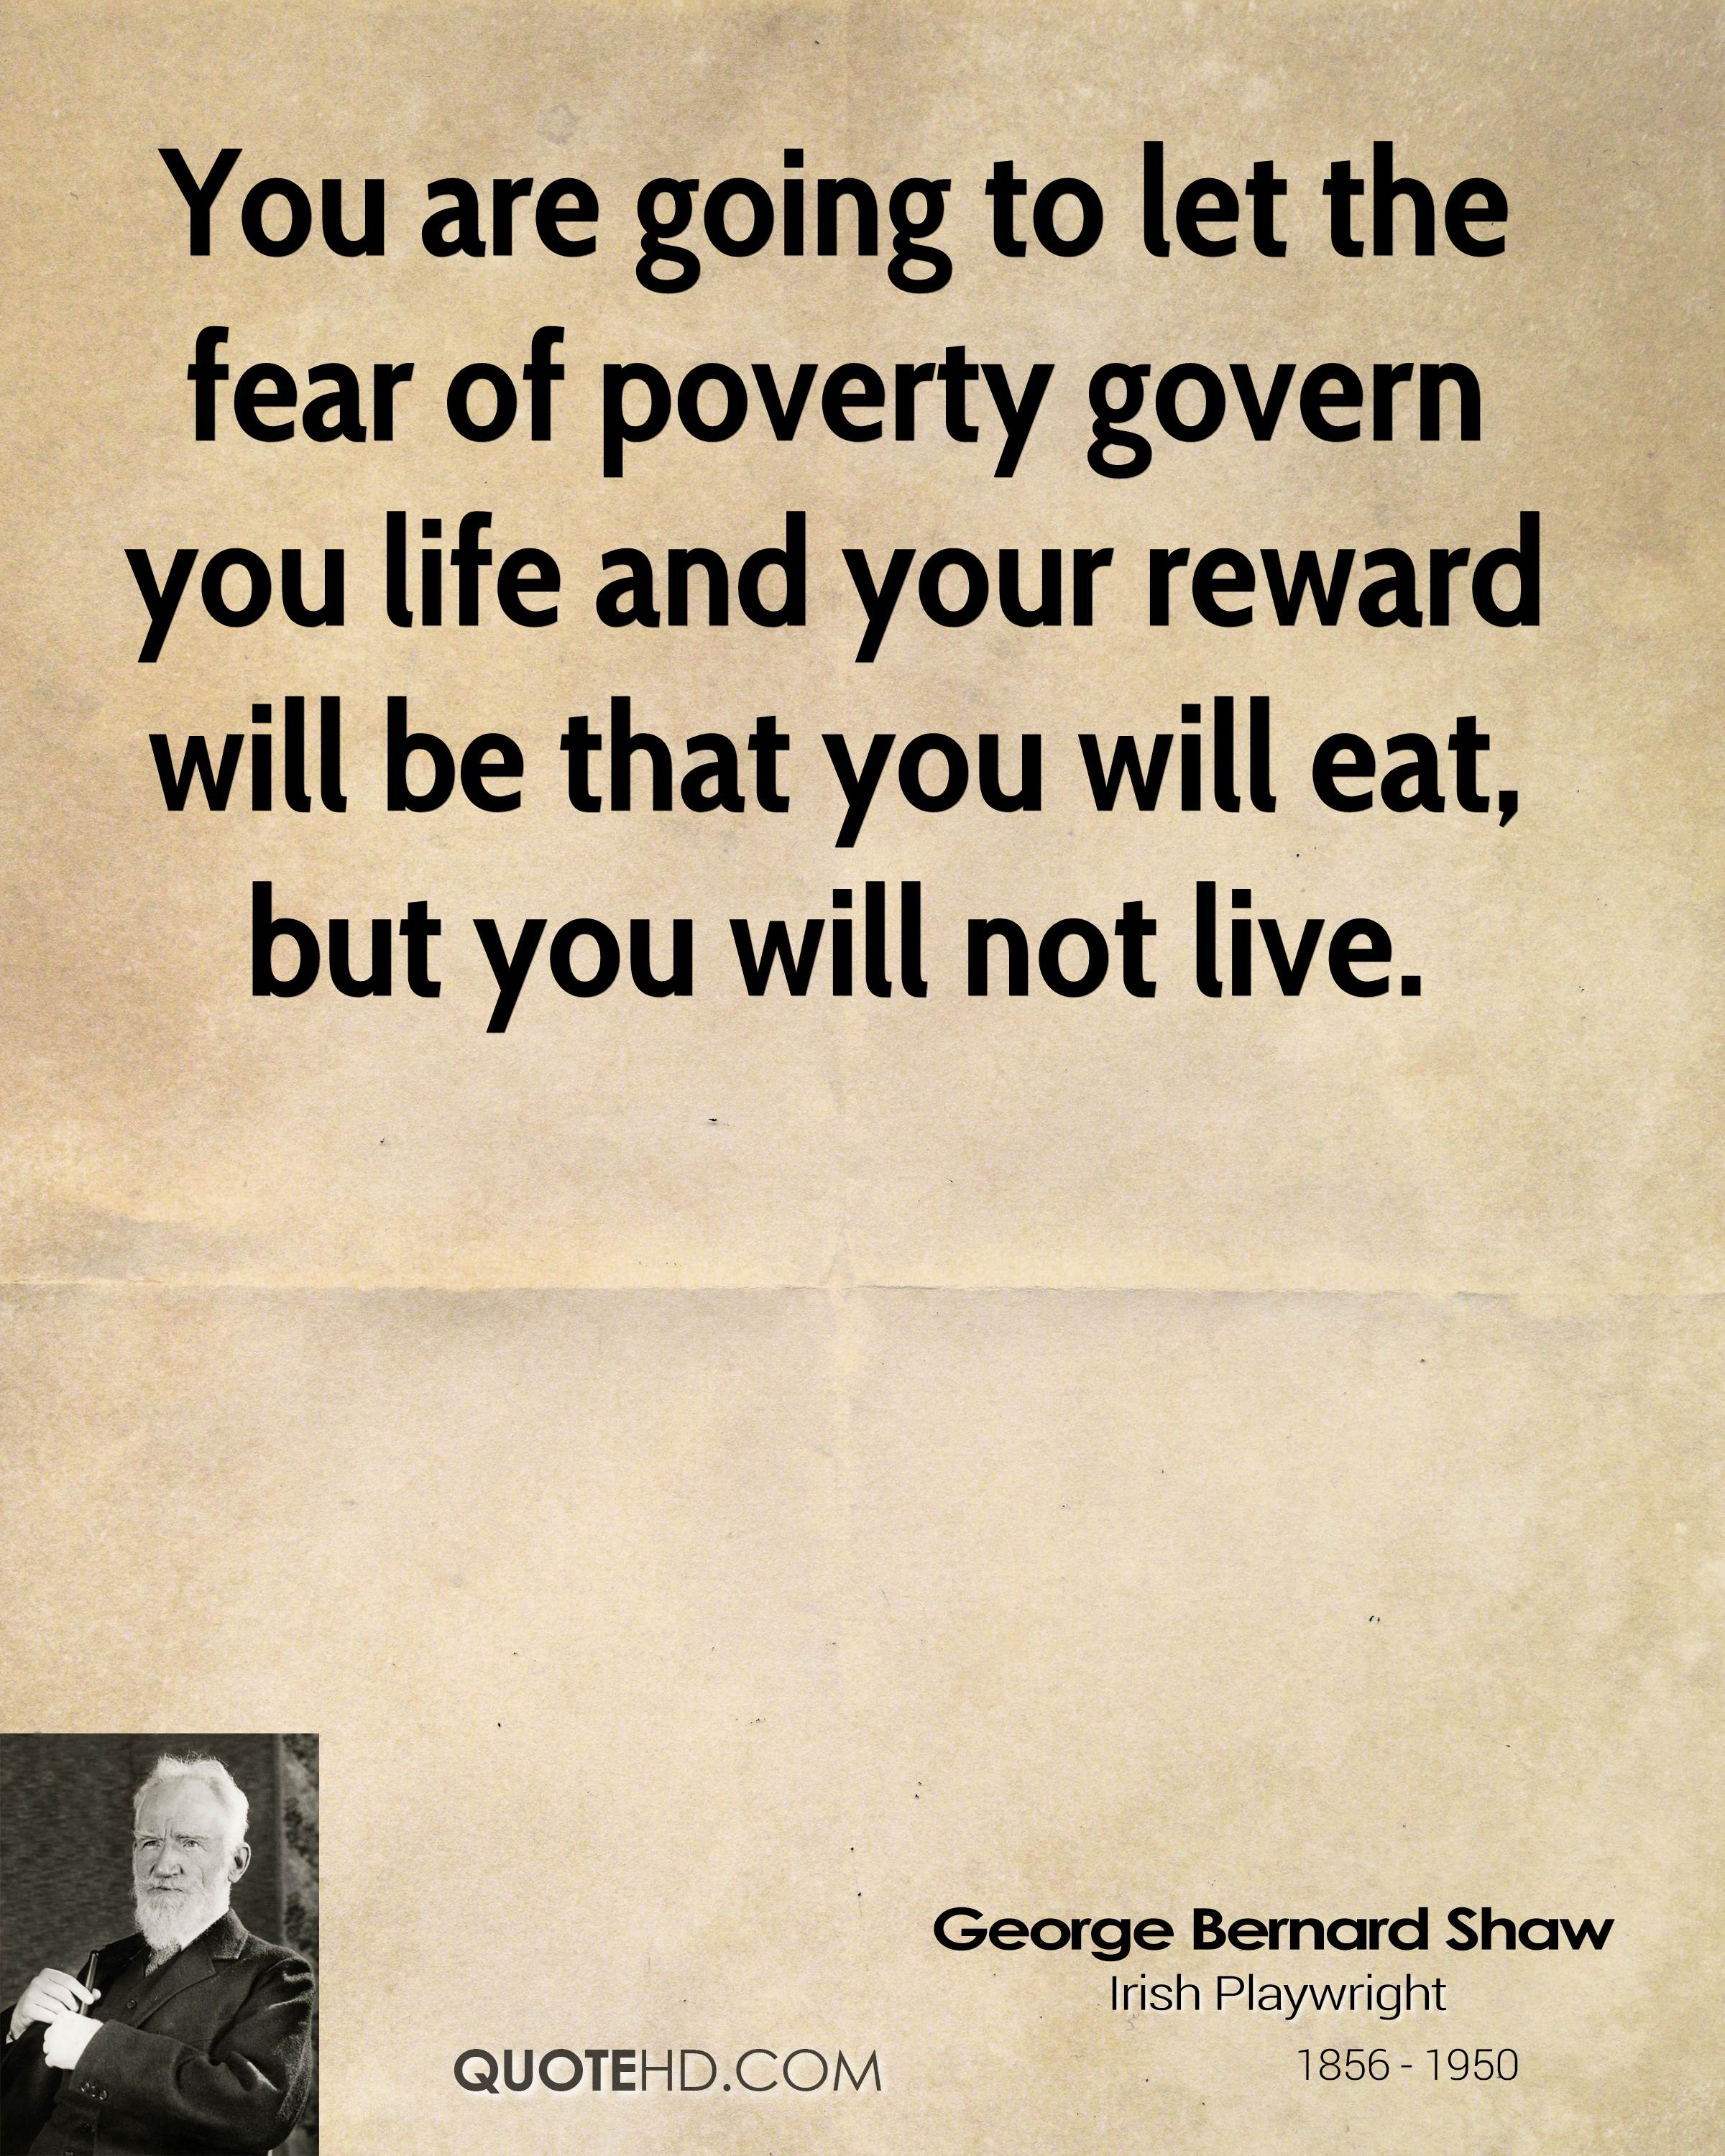 You are going to let the fear of poverty govern you life and your reward will be that you will eat, but you will not live.